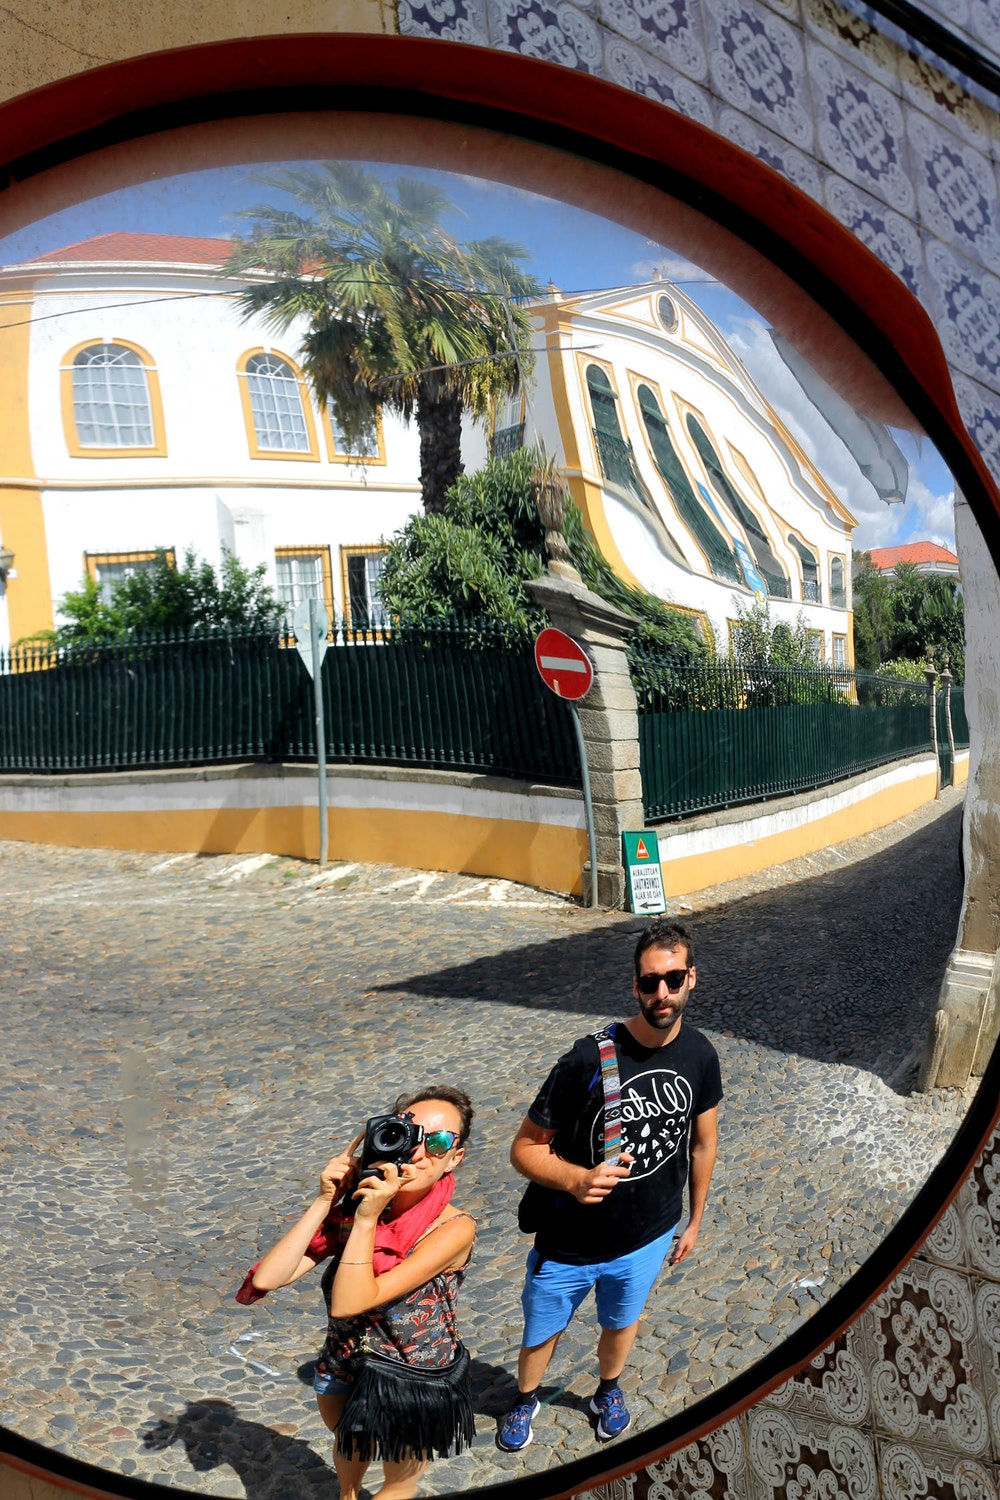 Taking a photo in a mirror on a quiet street in Evora, Portugal